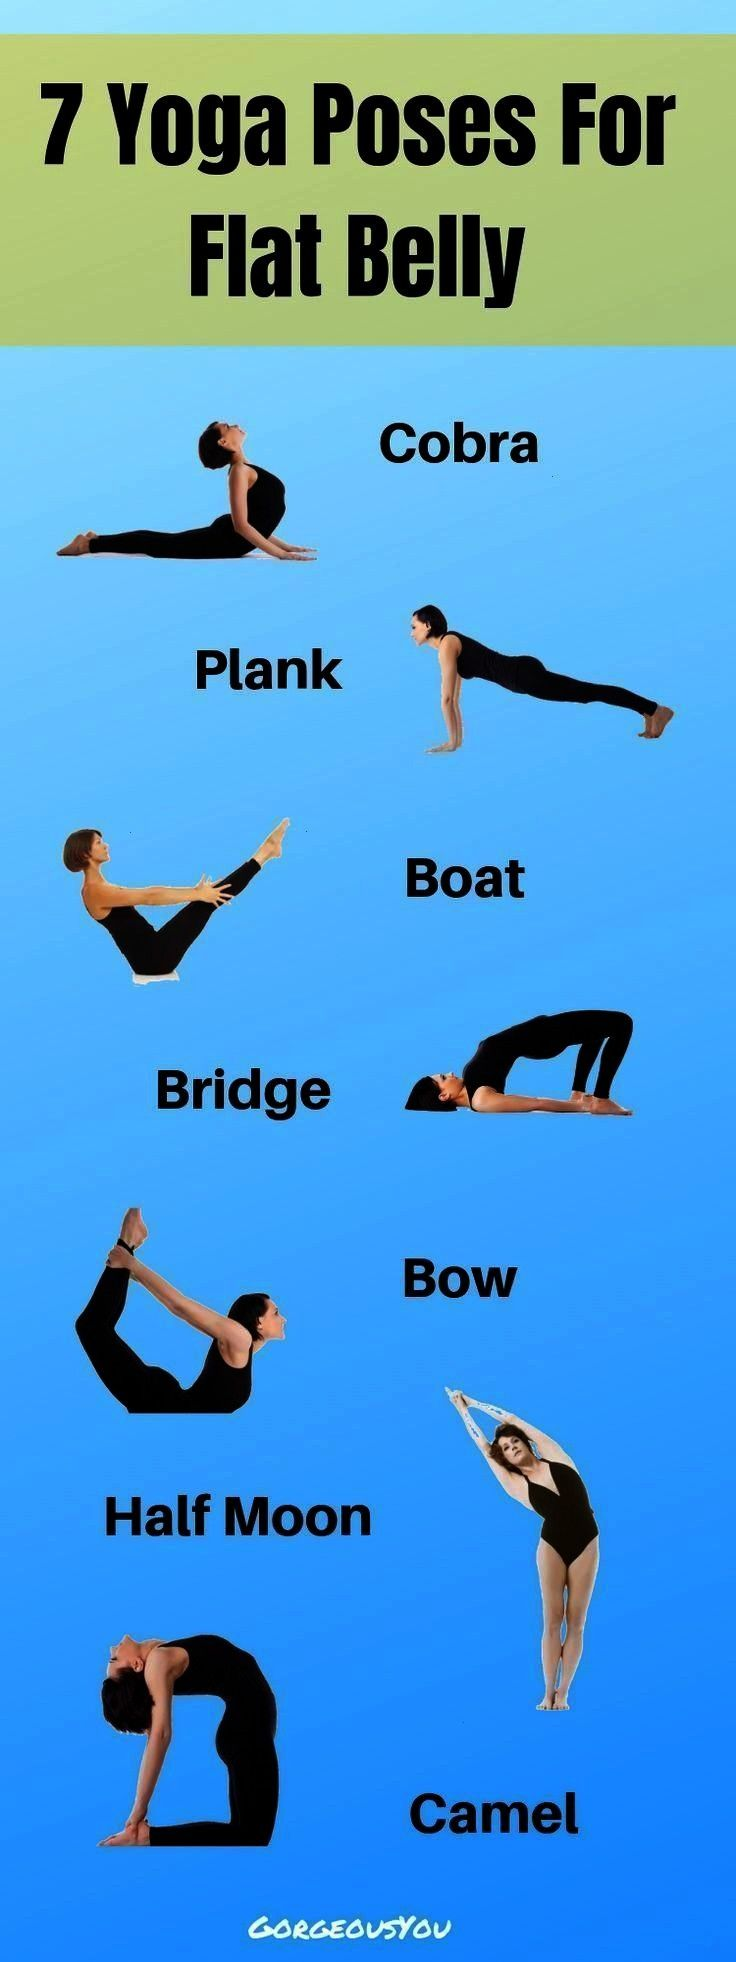 #sectionthese #abdominal #extremely #helpful #tighten #section #fitness #tothese #these #seven #pose...